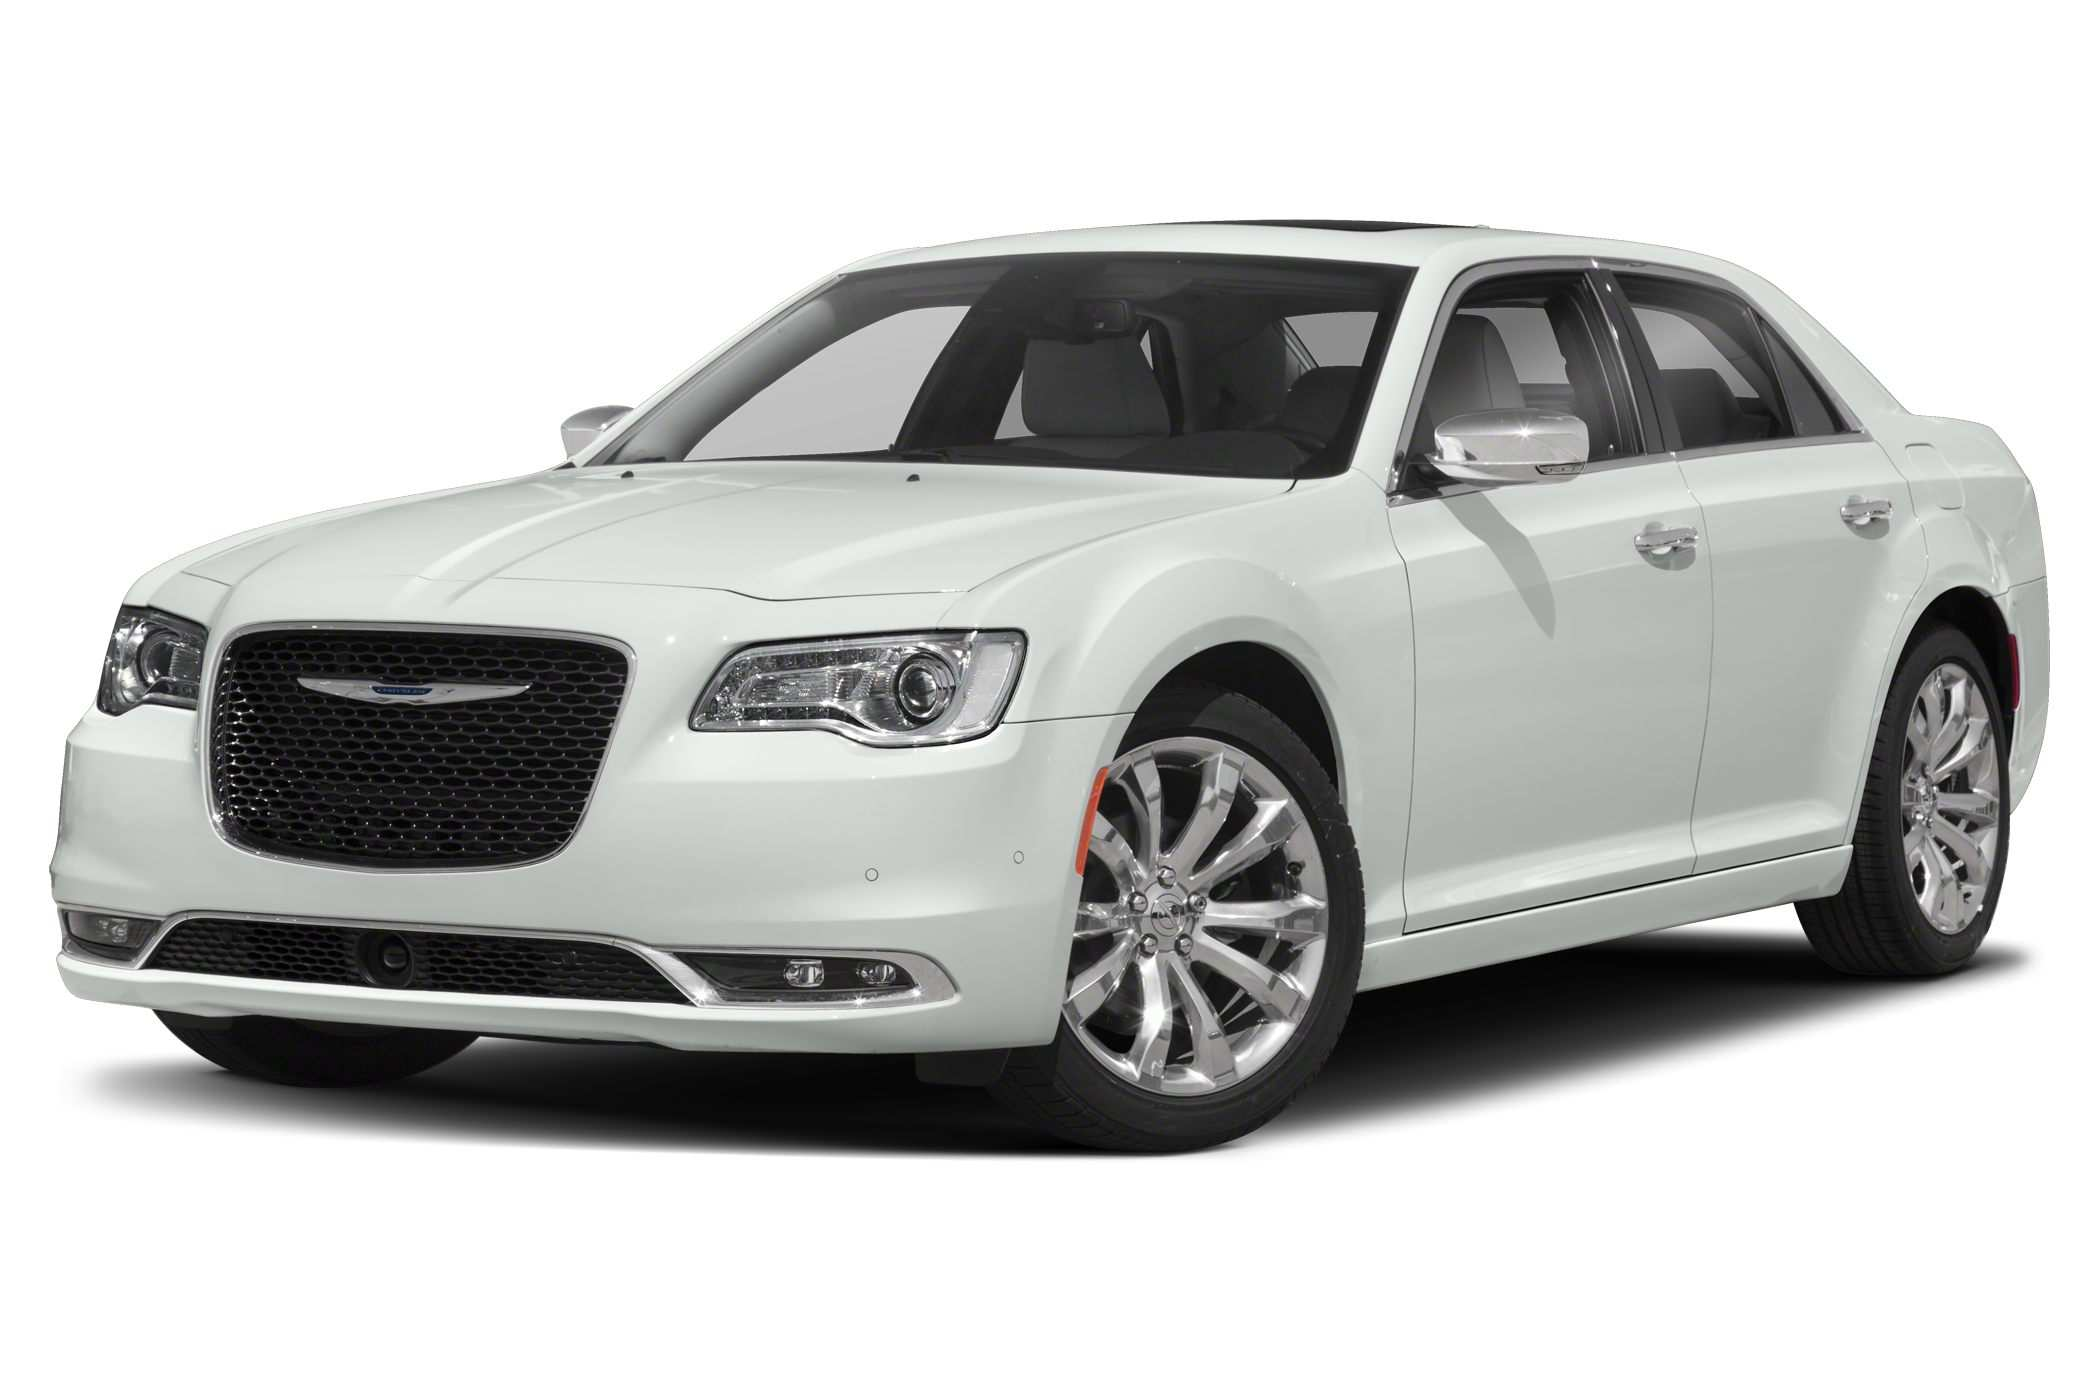 95 A 2019 Chrysler 300 Pics Redesign And Review